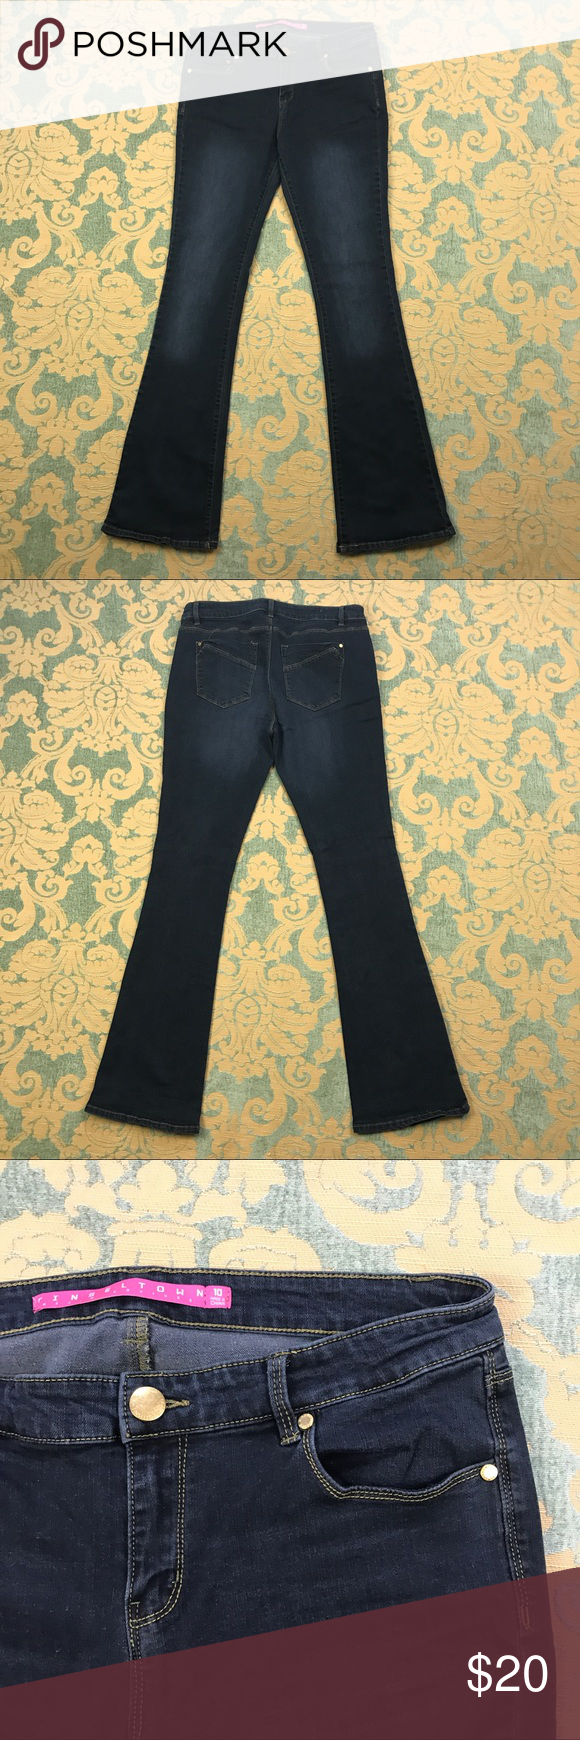 """Bootcut Blue Jeans 🦋 33"""" Inseam Tinseltown Dark Blue Jeans  Women's Size: 10  Material: 79% Cotton 29% Polyester 1% Spandex  Gently used with no flaws.  Measurements lying flat: Waist 16"""", Hips 18"""", Inseam 33"""", Front Rise 9"""", Back Rise 14"""".  Please, review pictures. You will get the item shown. Smoke & pet free home.   💋❤️🌷Save, Save, Save! 💋❤️🌷  💵👍🏻💰❤️ 30% off 3+ Bundles ❤️💰👍🏻💵 Tinseltown Jeans Boot Cut"""